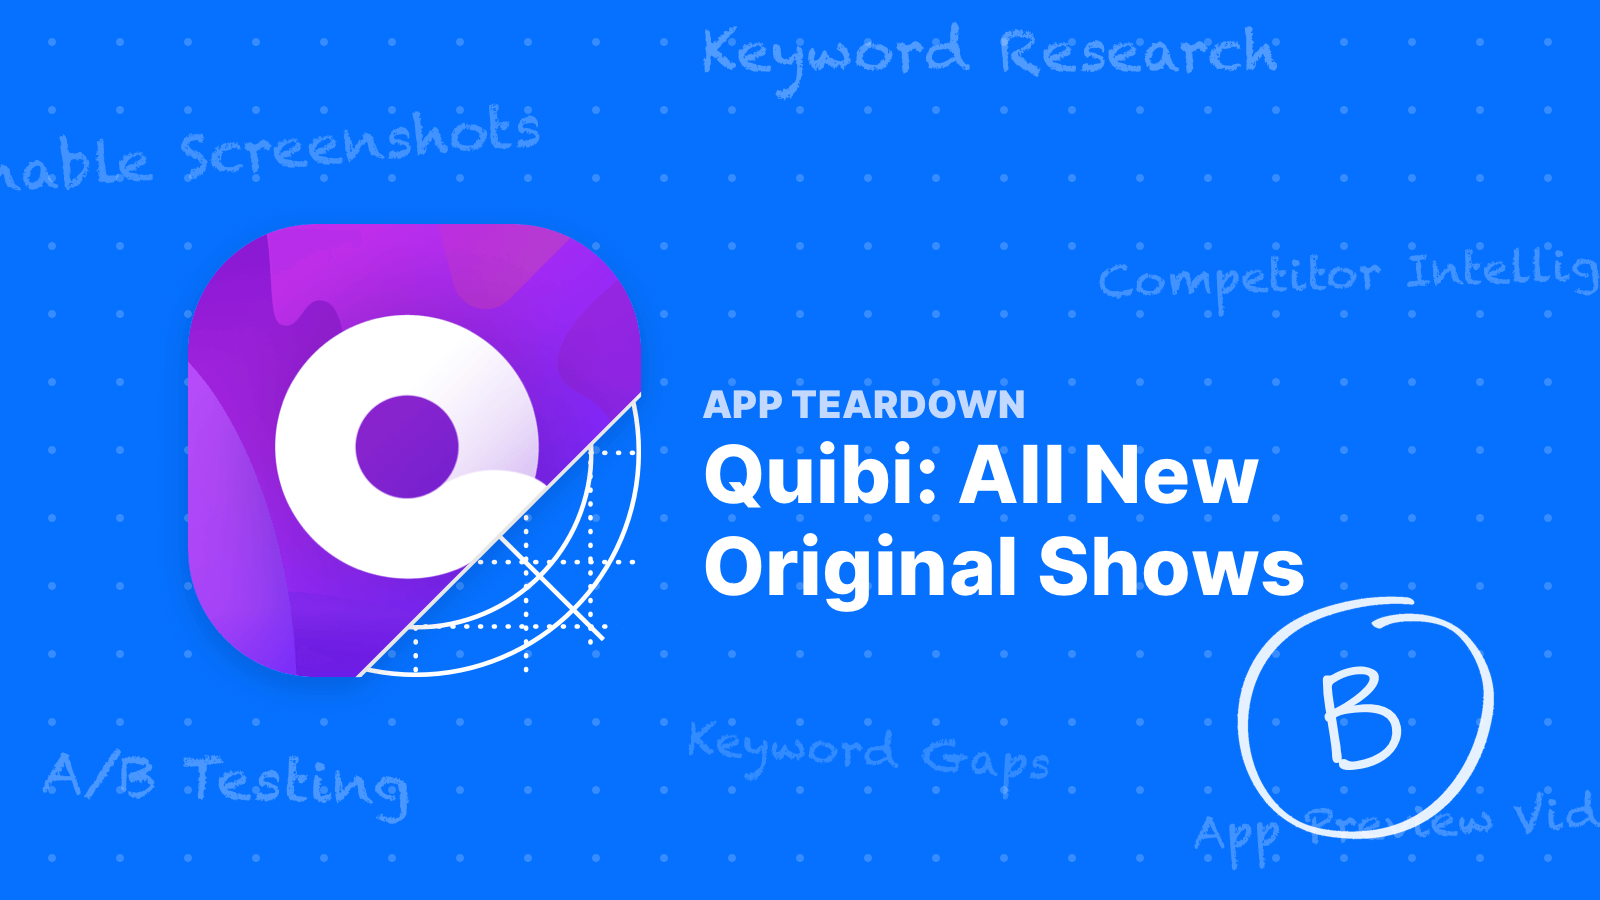 App Teardown - Does Quibi Even Have a Chance on the App Store?